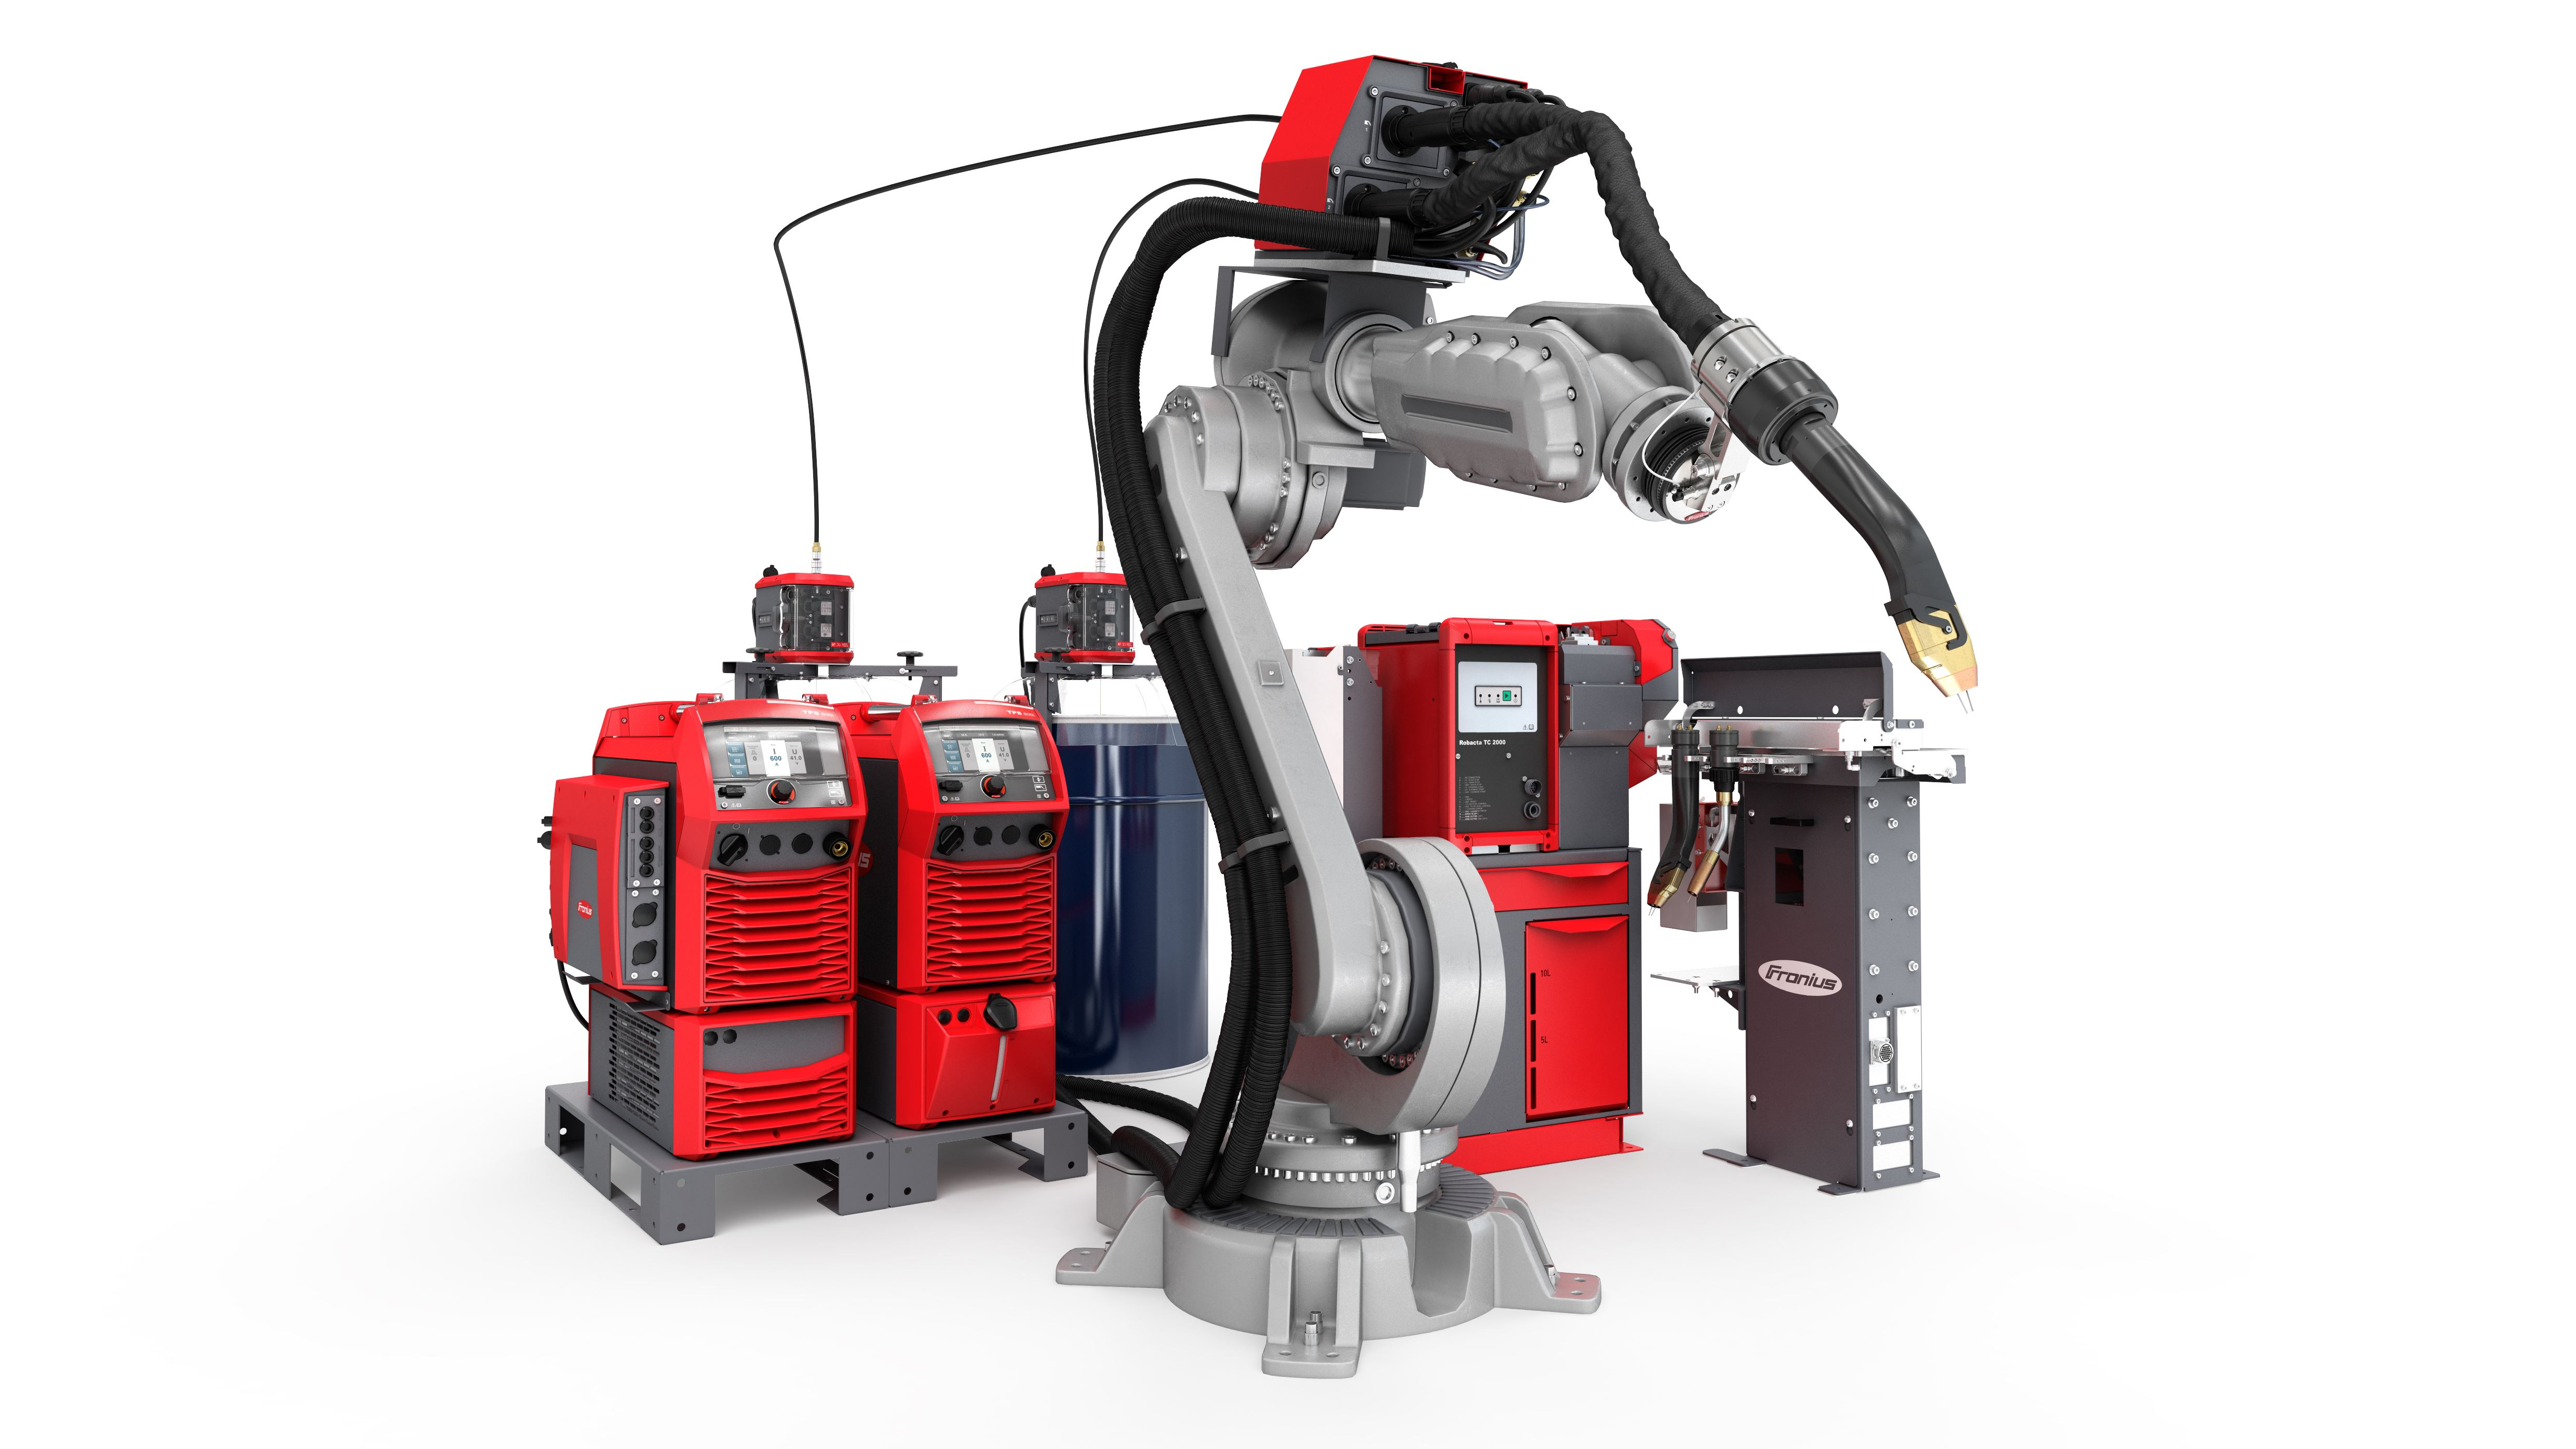 TPS/i TWIN Push Tandem Welding from Fronius for Increased Efficiency